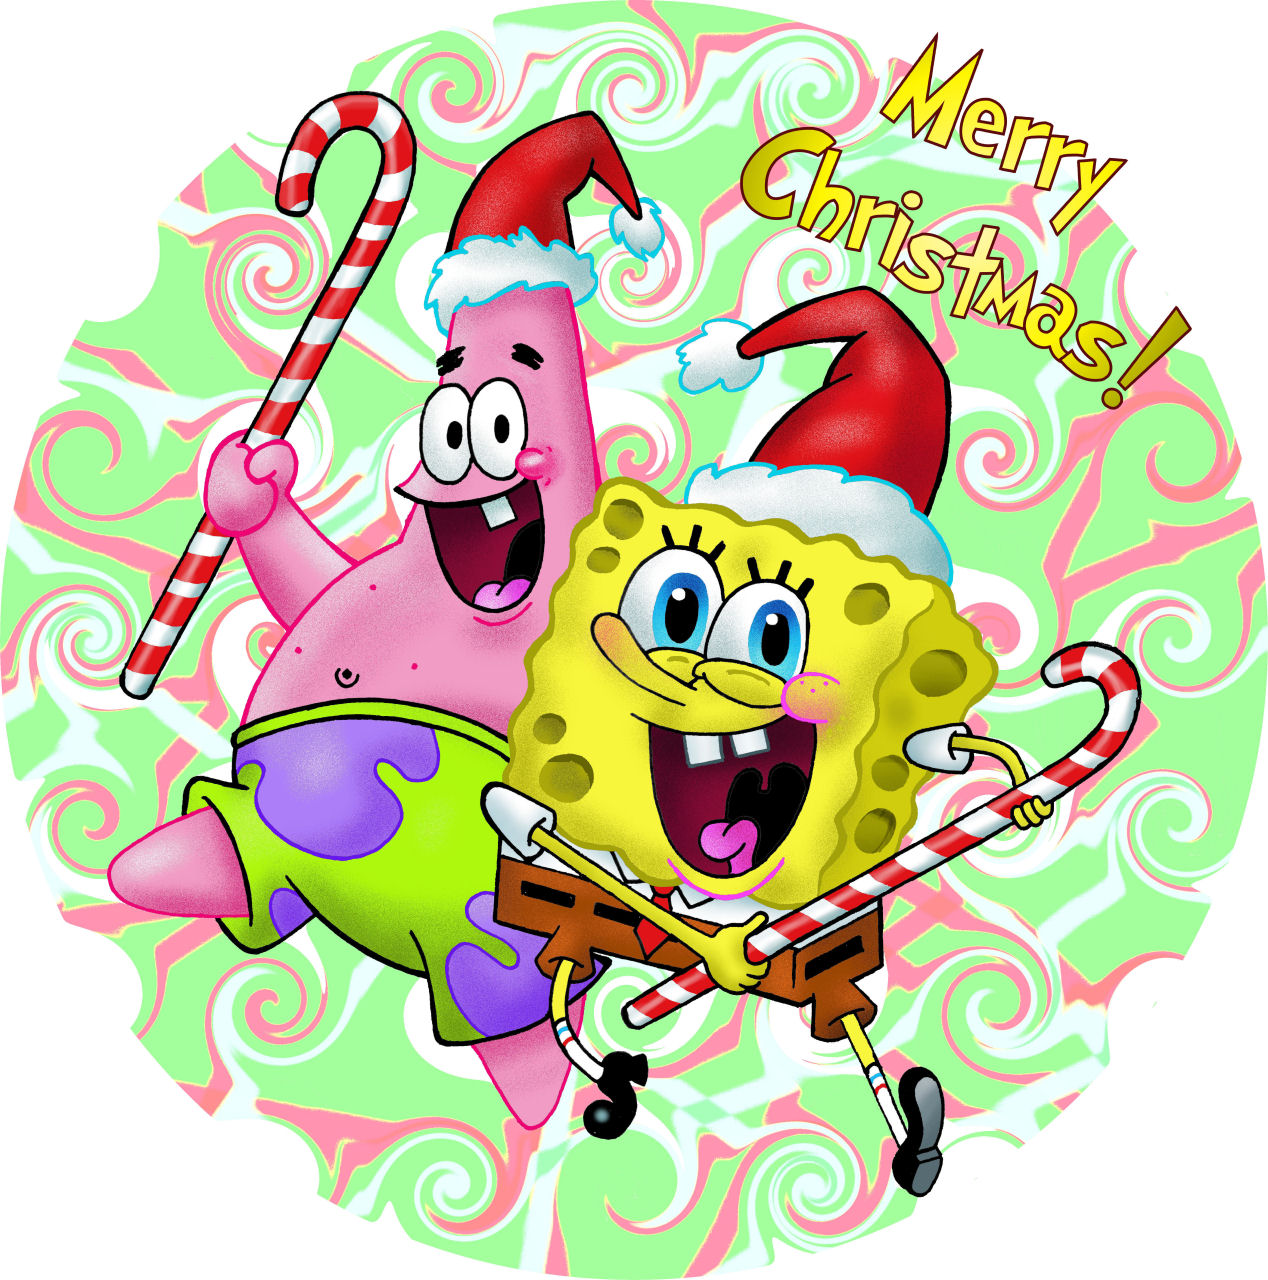 Spongebob Christmas by gjones1 on DeviantArt A4d03iVP